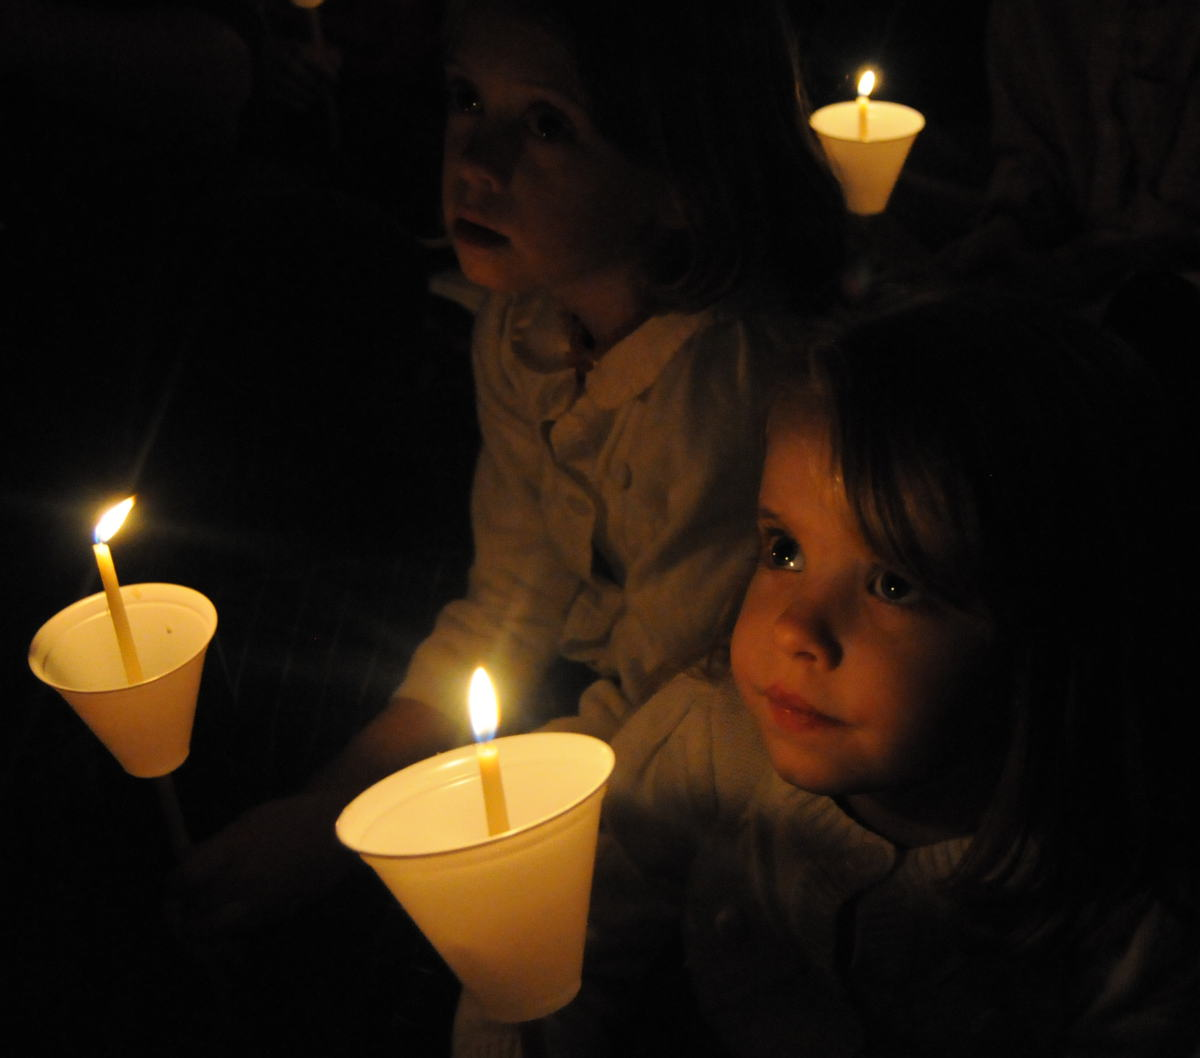 Candlelit Christmas carol singalong set for Dec. 22